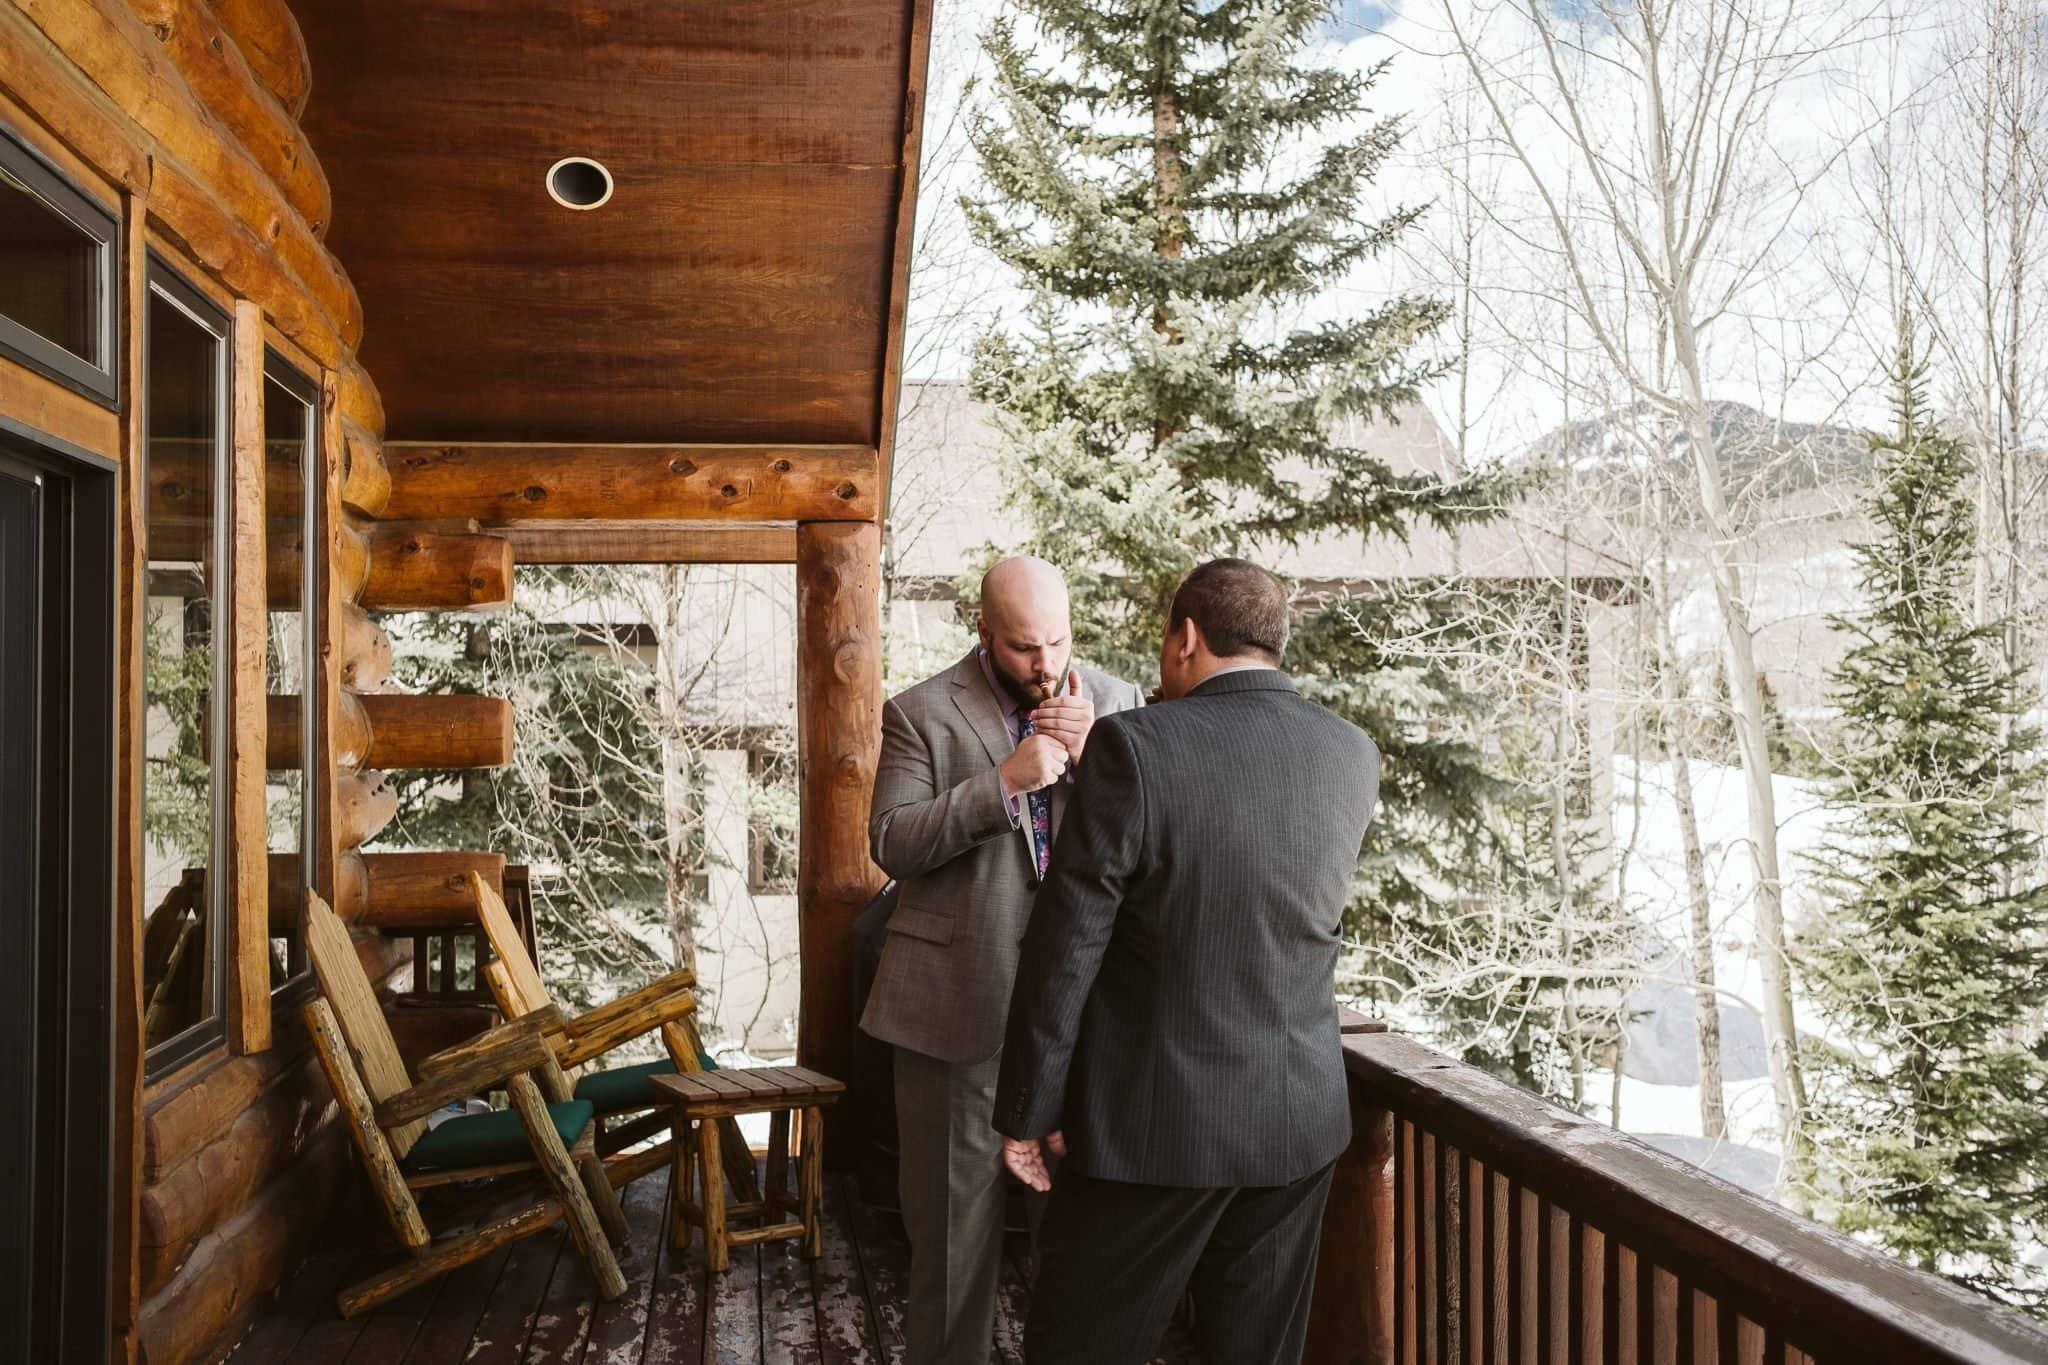 Groom and father of the bride smoking cigar on deck of log cabin